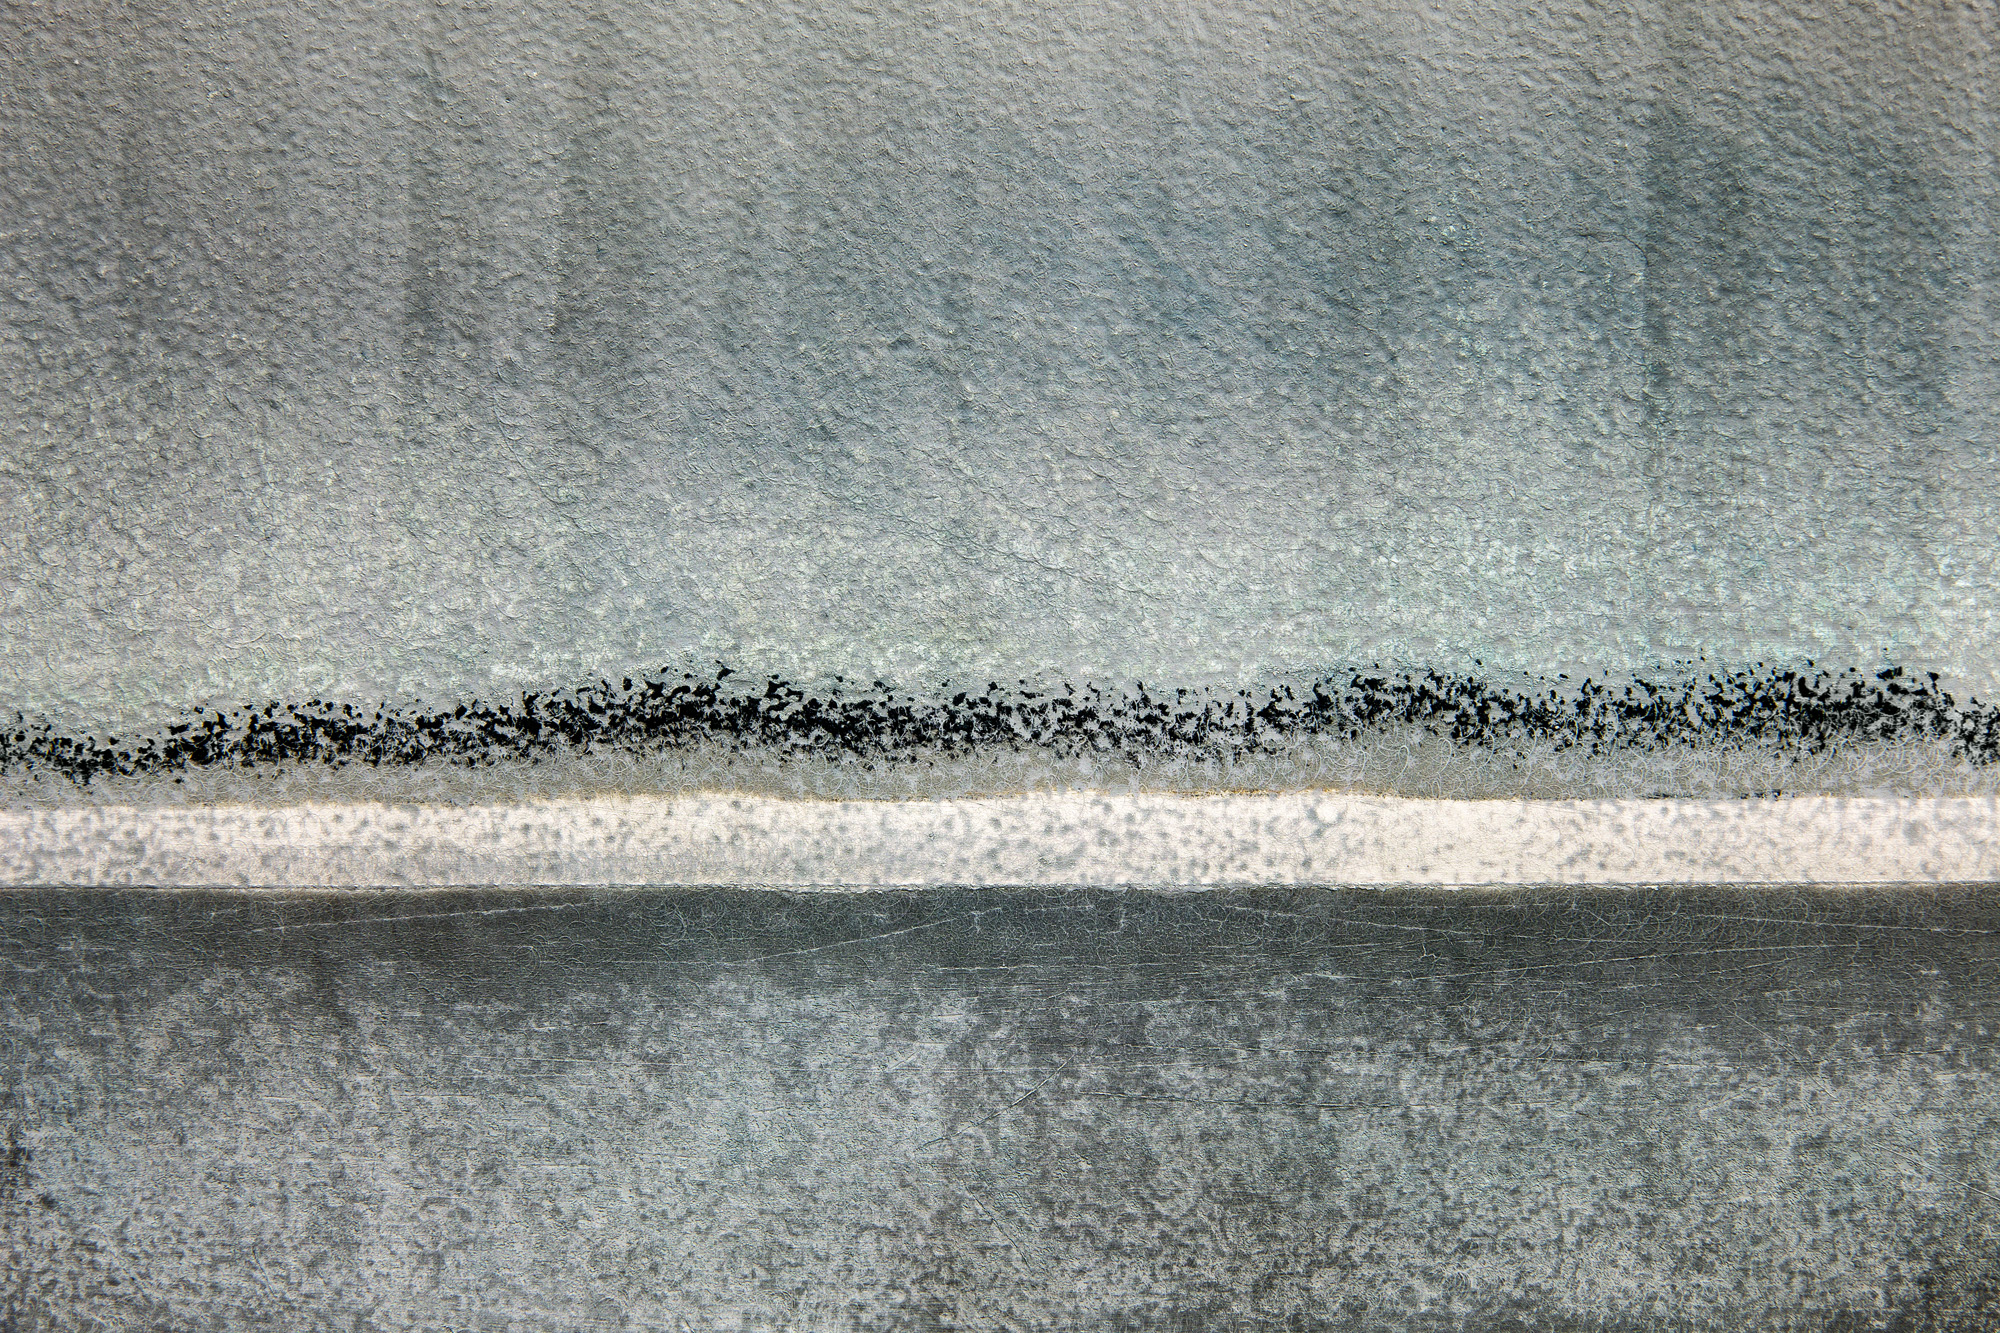 Dry Documentaries: Inlet in Fog I, 2019, archival pigment print, 12 x 18 in, edition of 10, $700